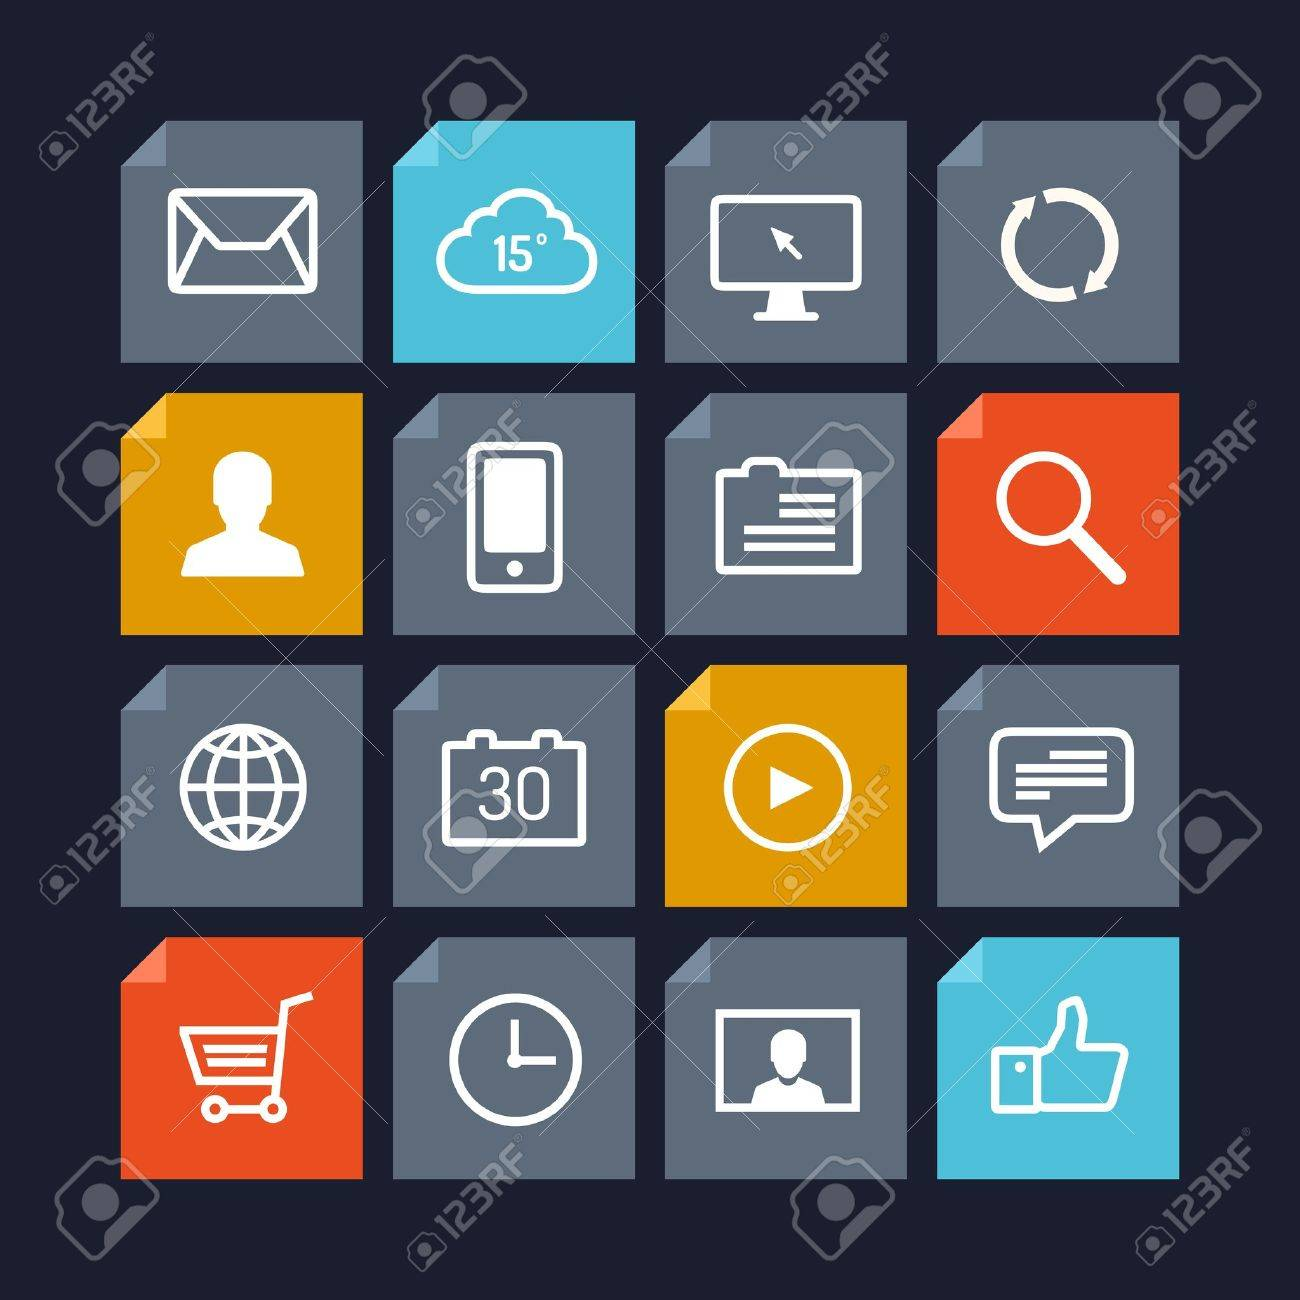 Flat design vector icons of various user interface elements and application symbols in modern metro style design  Isolated on dark background Stock Vector - 21691799